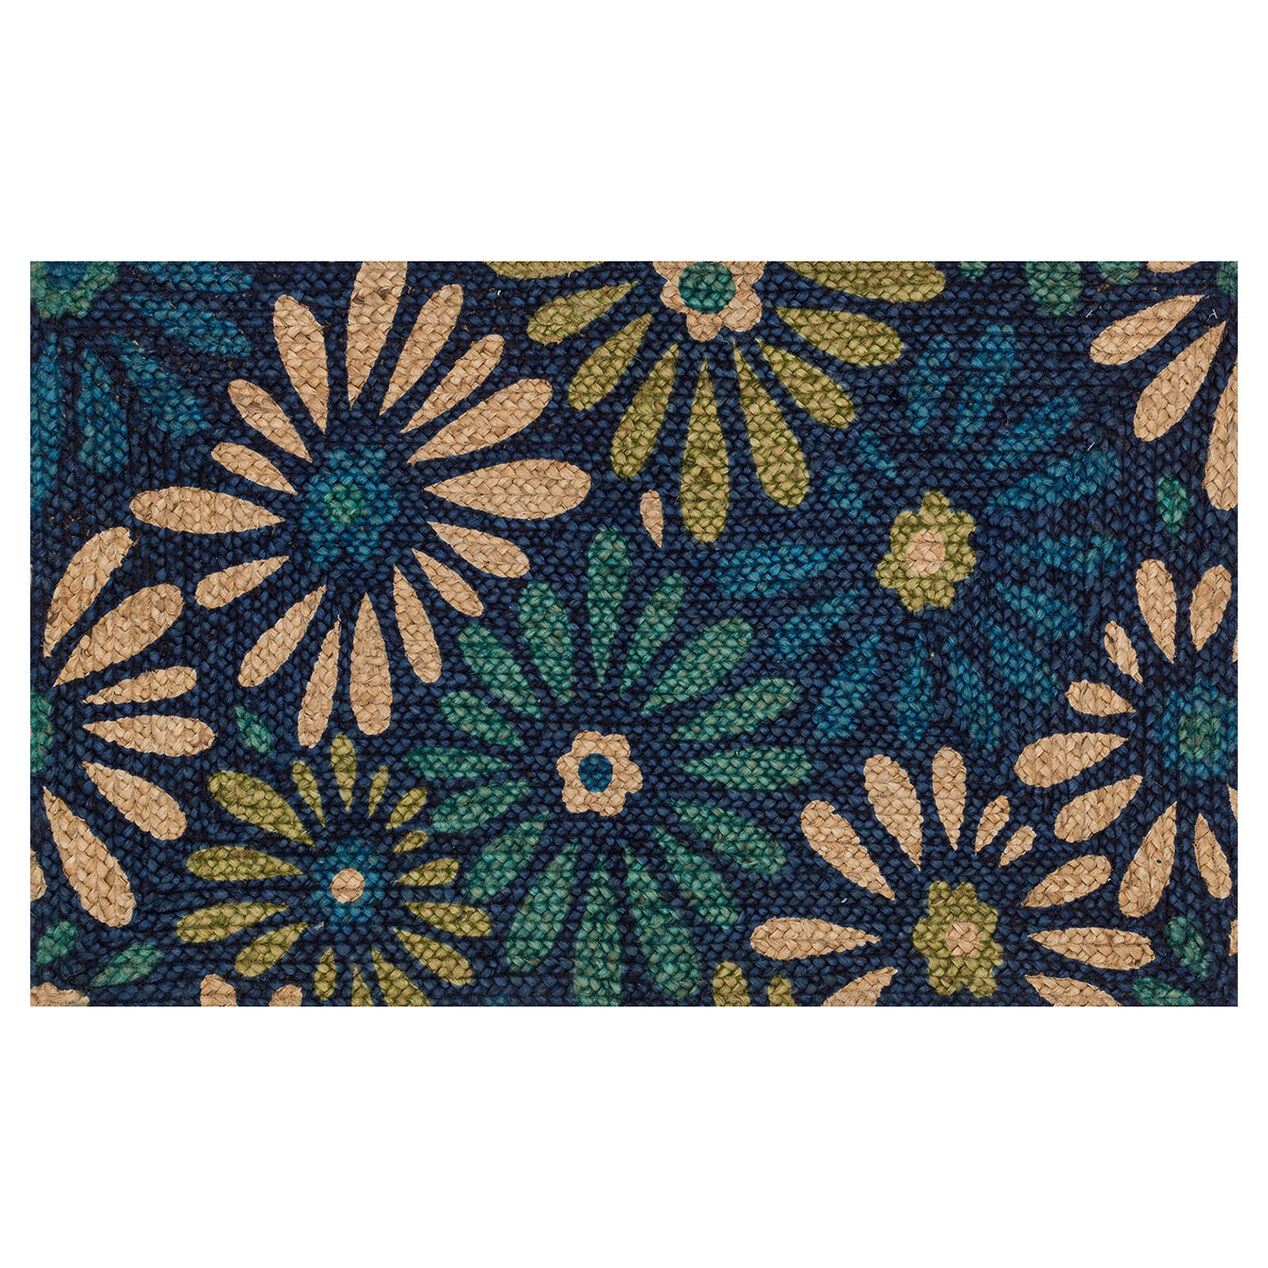 picture of merced blue multi colored rug 27x45 in bohemian style furniture